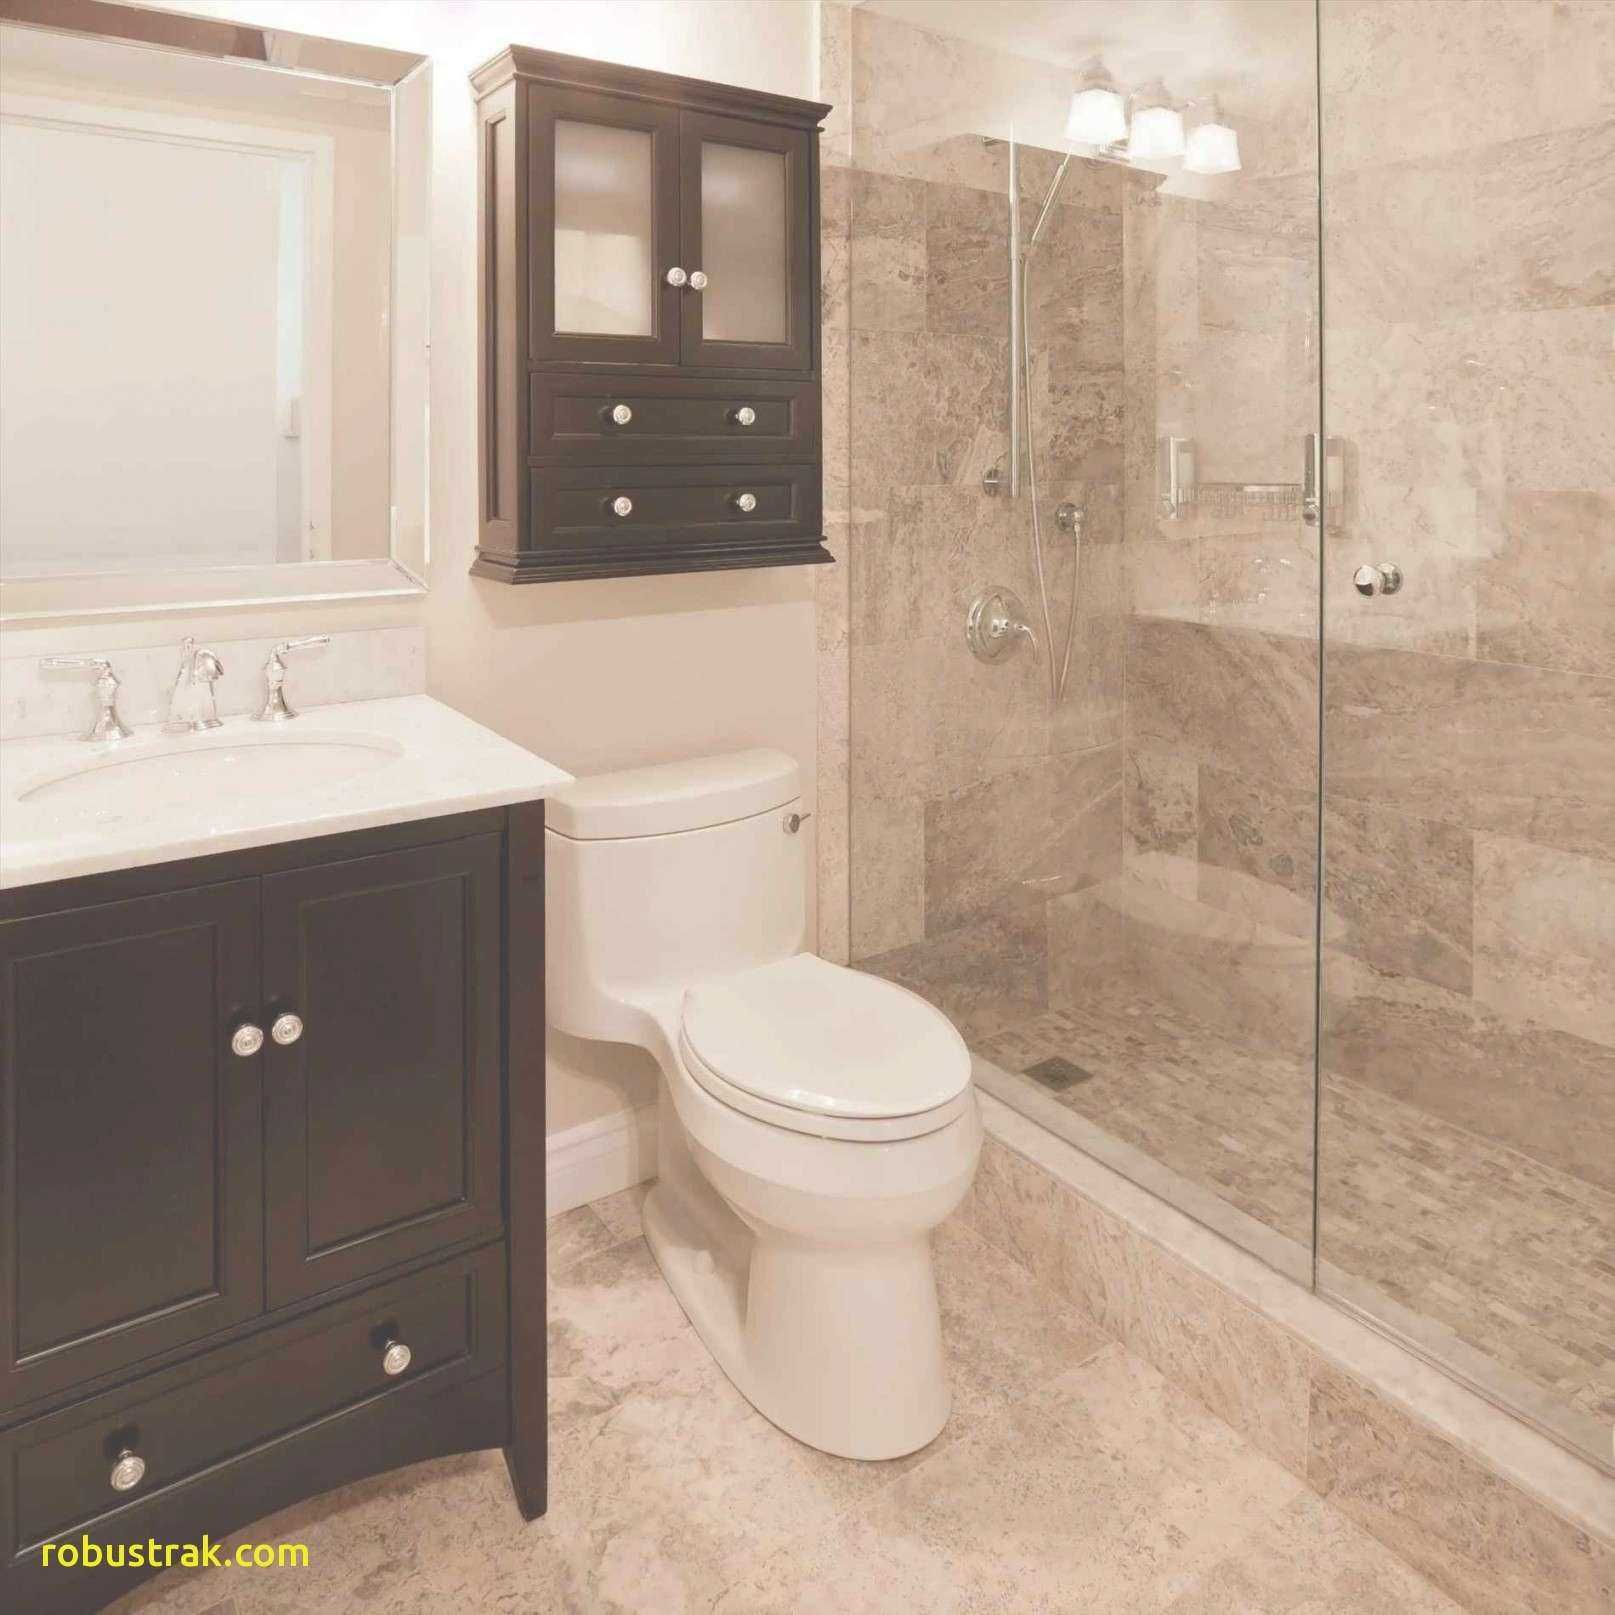 Bathroom Ideas With Walk In Shower Small Bathroom Makeover Bathroom Remodel Designs Small Bathroom Remodel